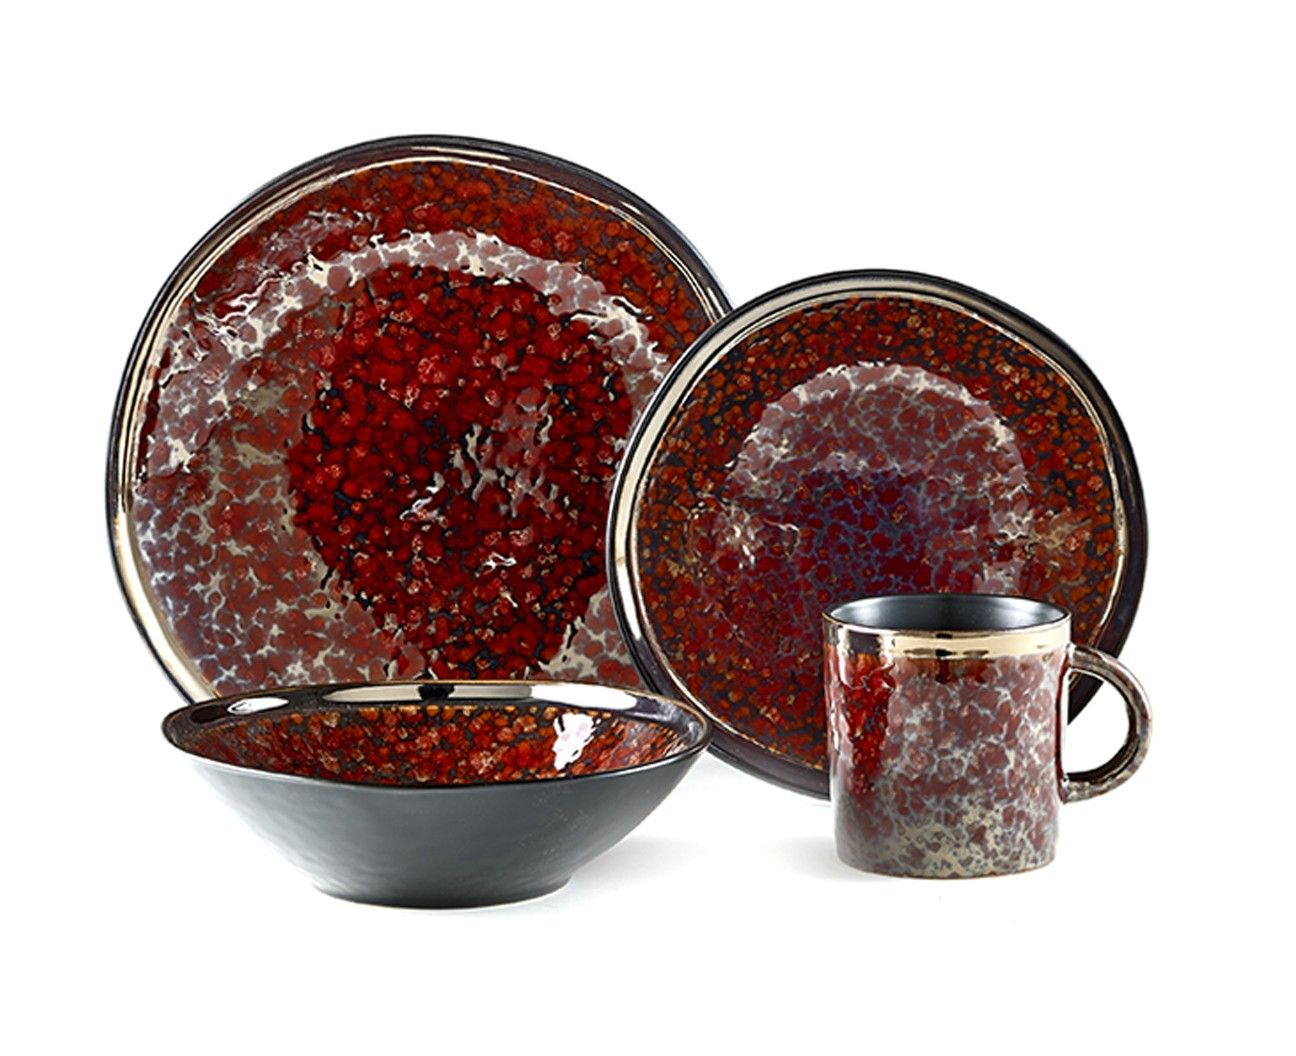 PEBBLE RED DINNERWARE 16 pc (service for 4) - Dinnerware - Dining |  sc 1 st  Pinterest & PEBBLE RED DINNERWARE 16 pc (service for 4) - Dinnerware - Dining ...